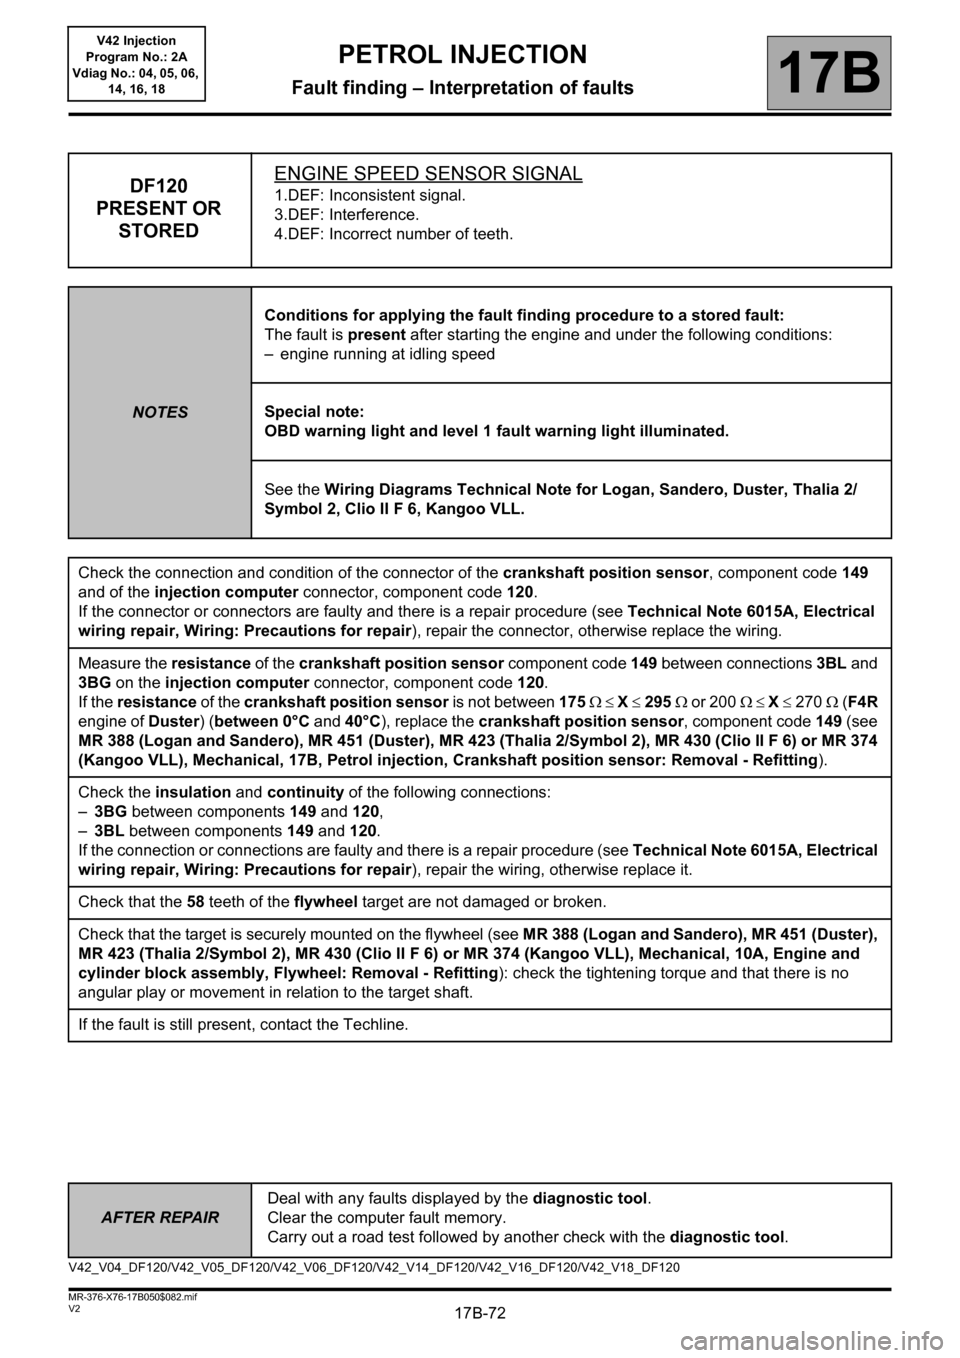 RENAULT KANGOO 2013 X61 / 2.G Petrol V42 Injection Workshop Manual, Page 72